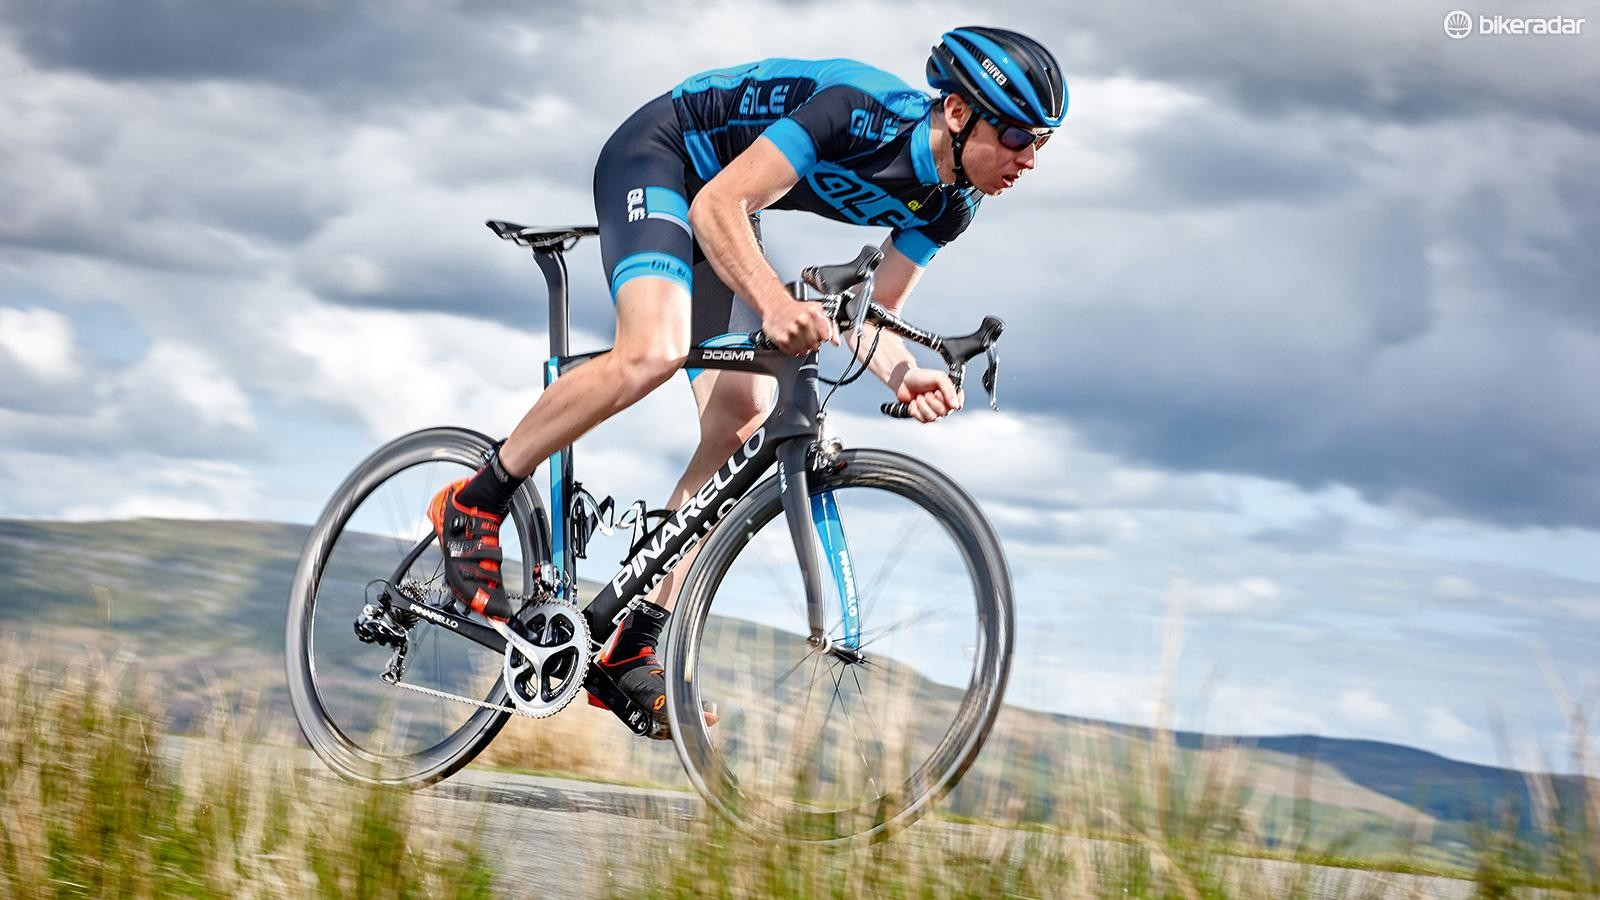 Pinarello's Dogma F8 is the jewel in the Italian bike builder's crown